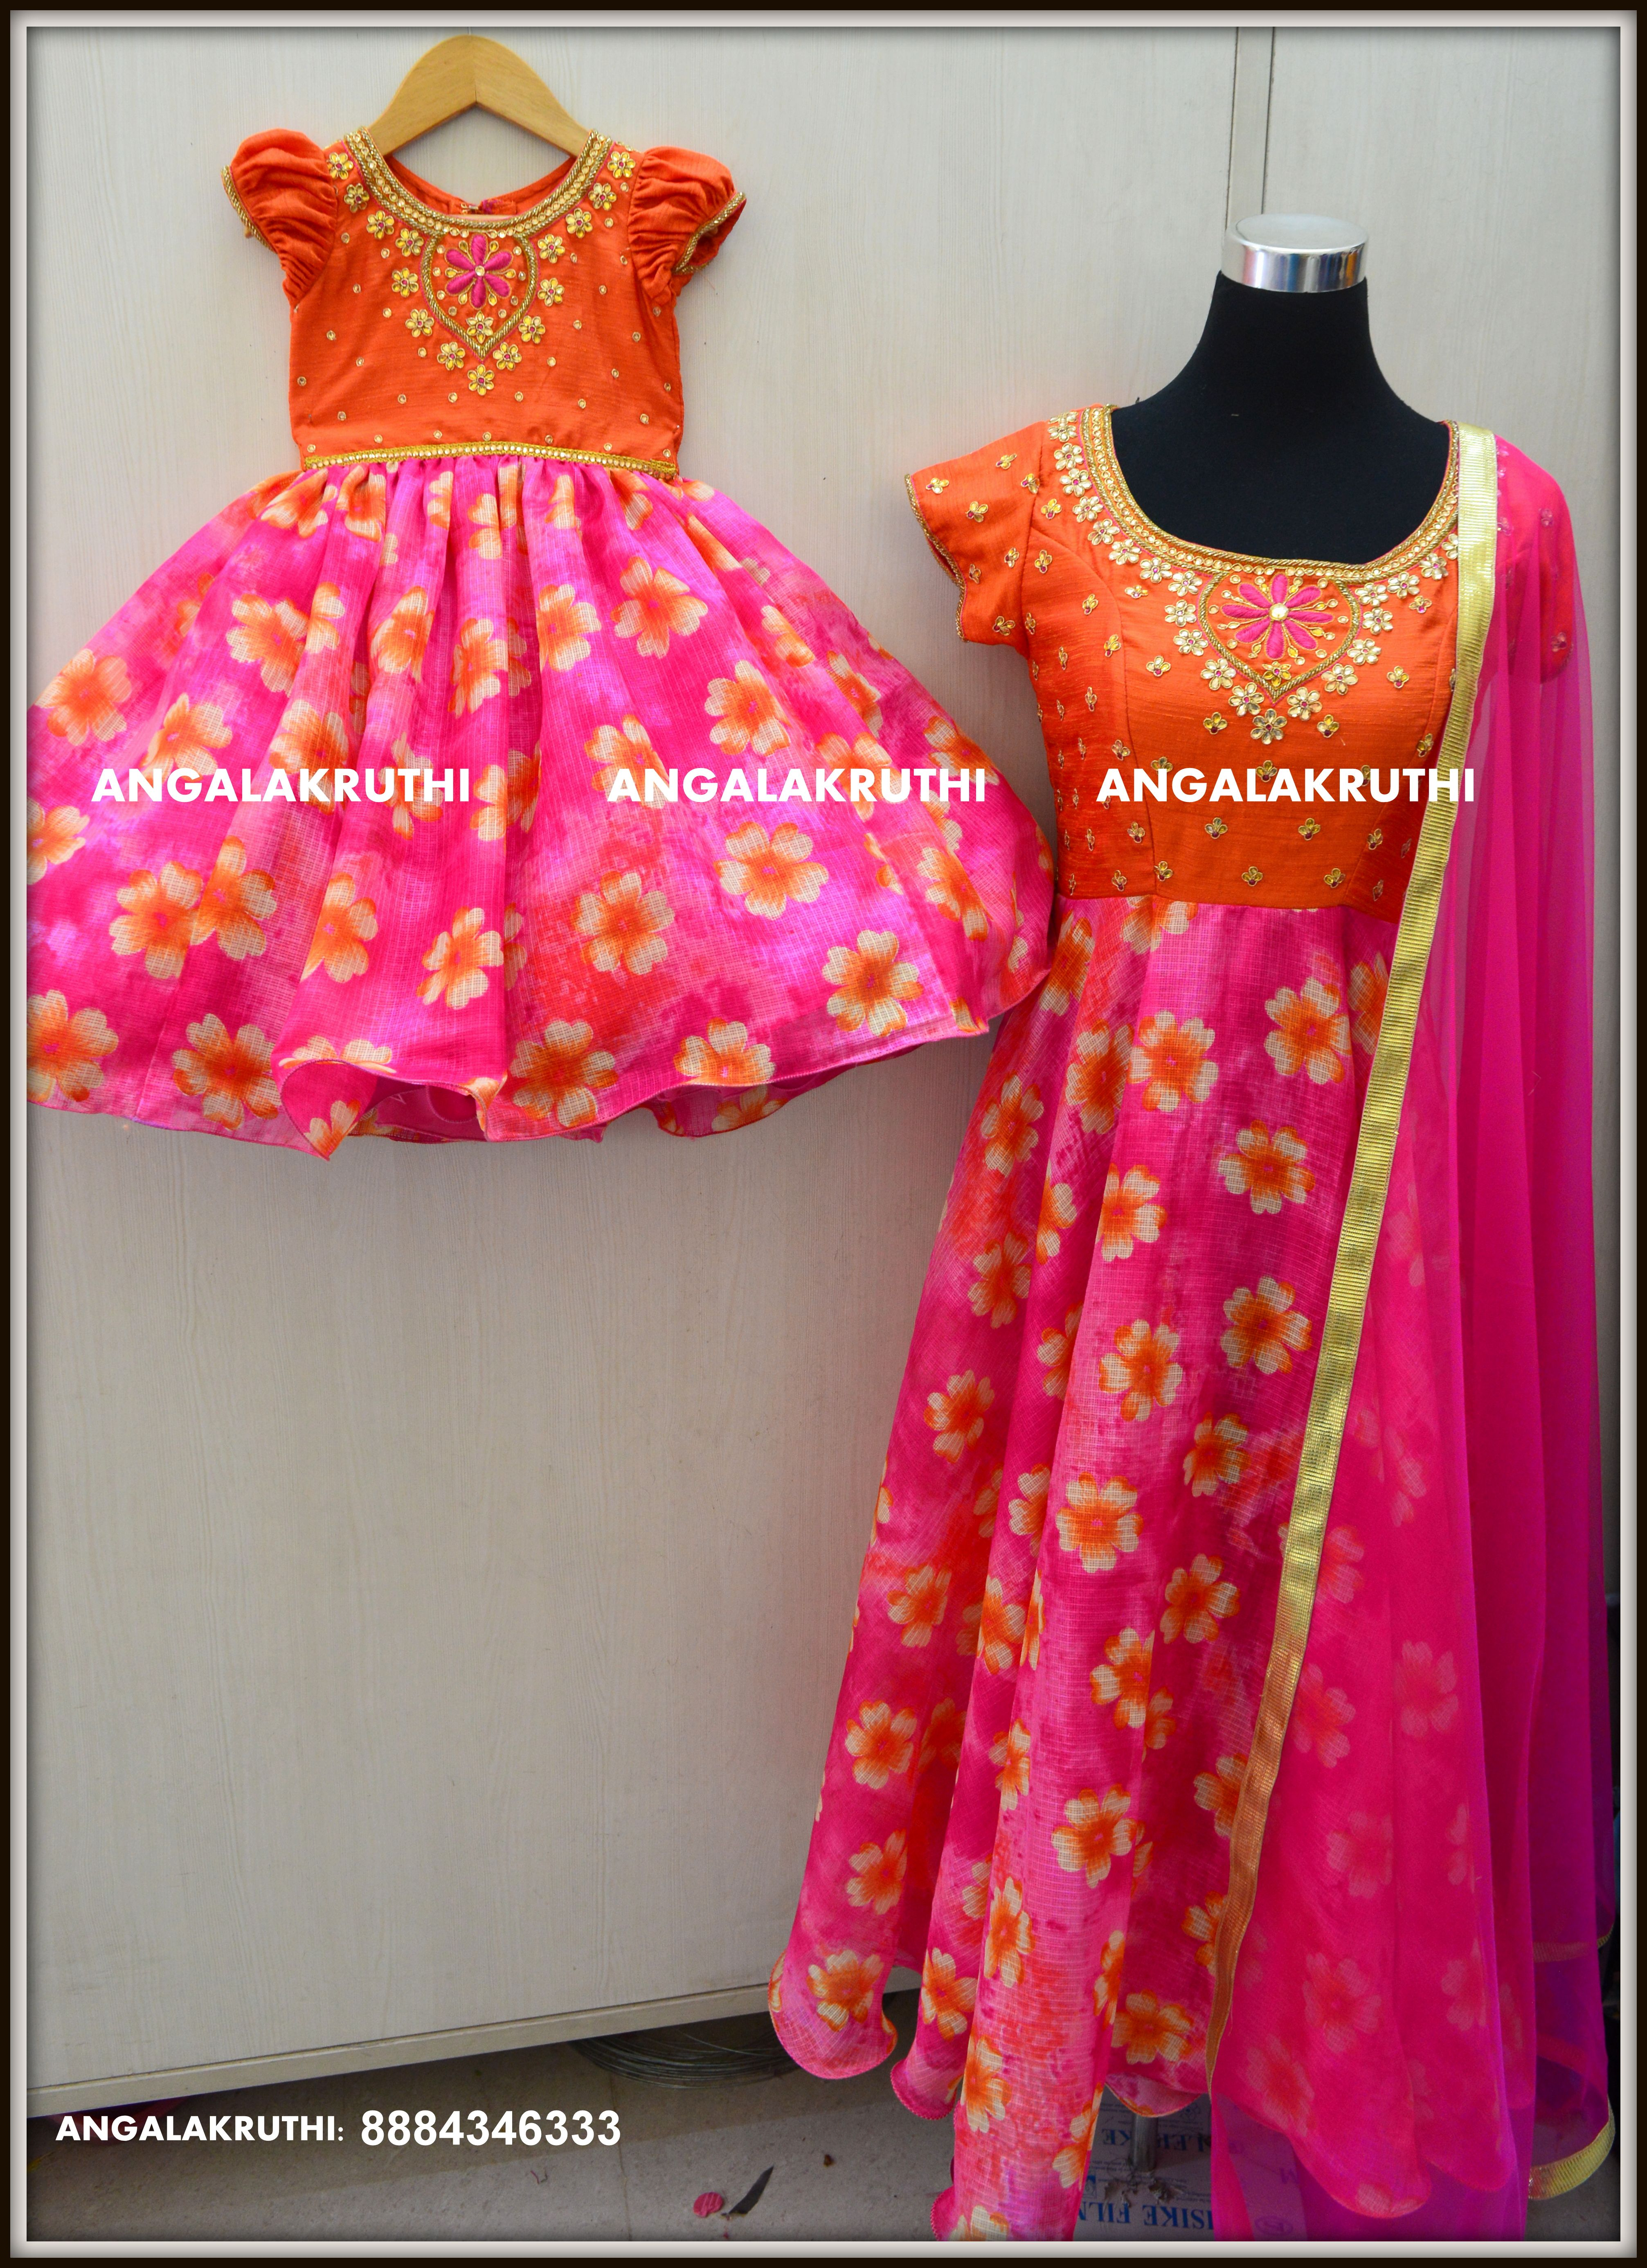 283ba6954a Mom and Me designs with hand embroidery by Angalakruthi-Designer boutique  Bangalore # Mom and daughter designs with hand embroidery #Floral designs  for Mom ...